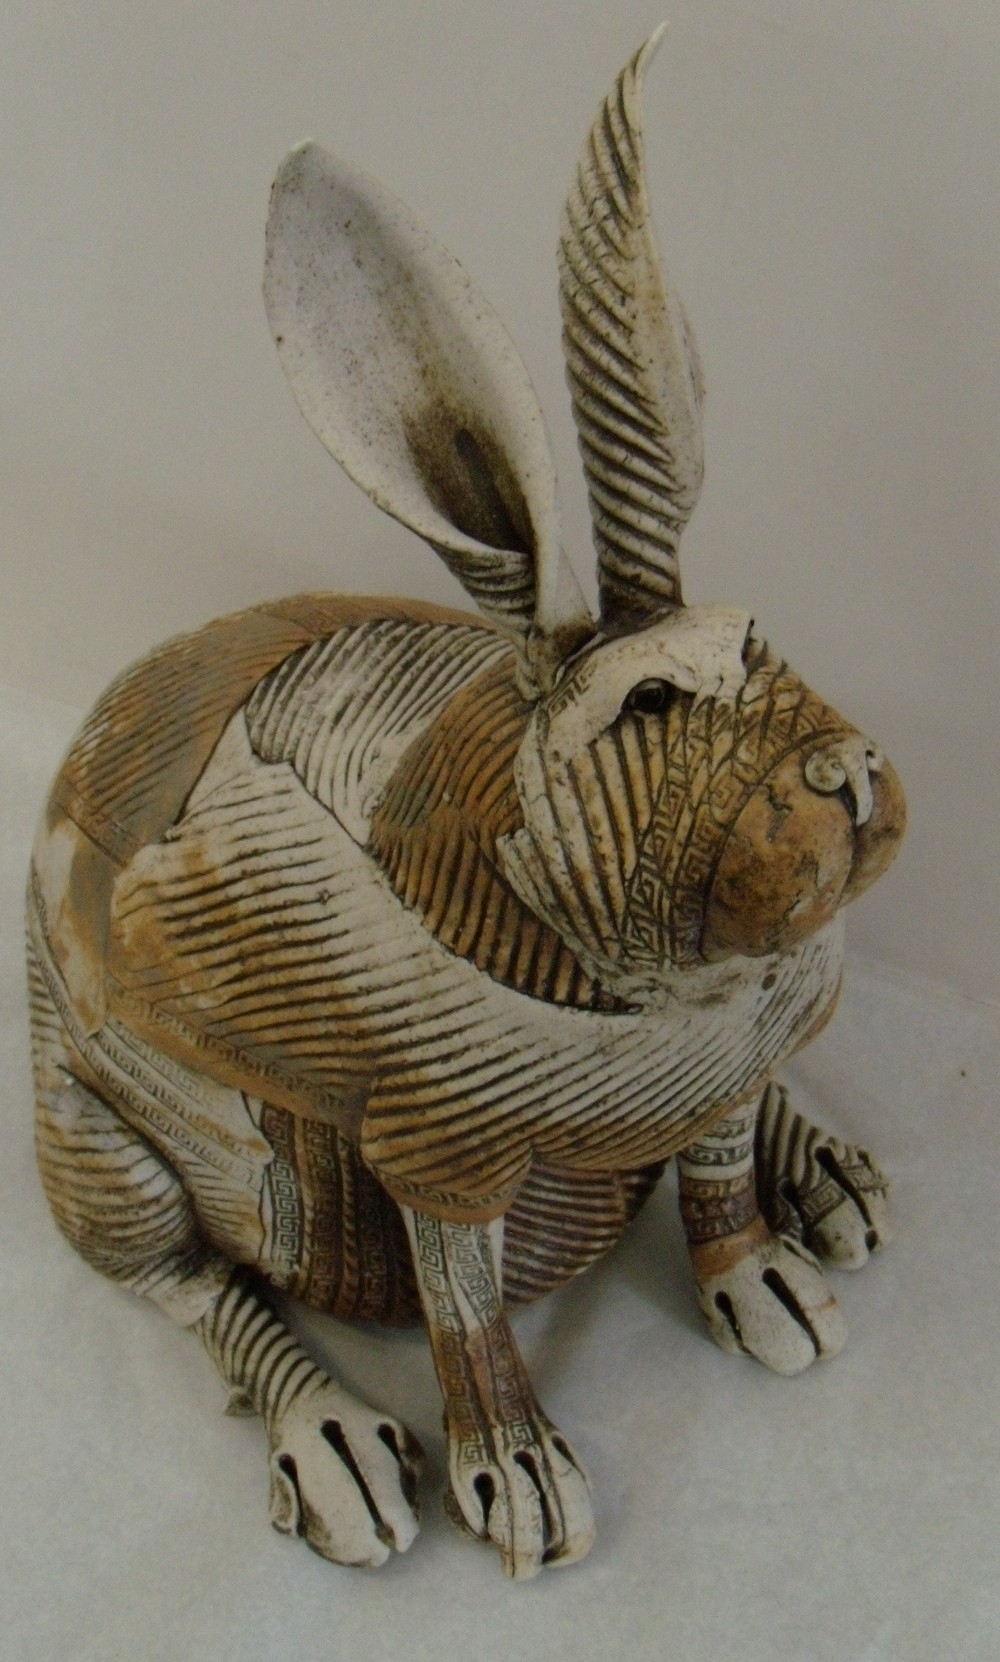 Fat Rabbit 1 $320 Measures approx 340 mm w x 340 mm h